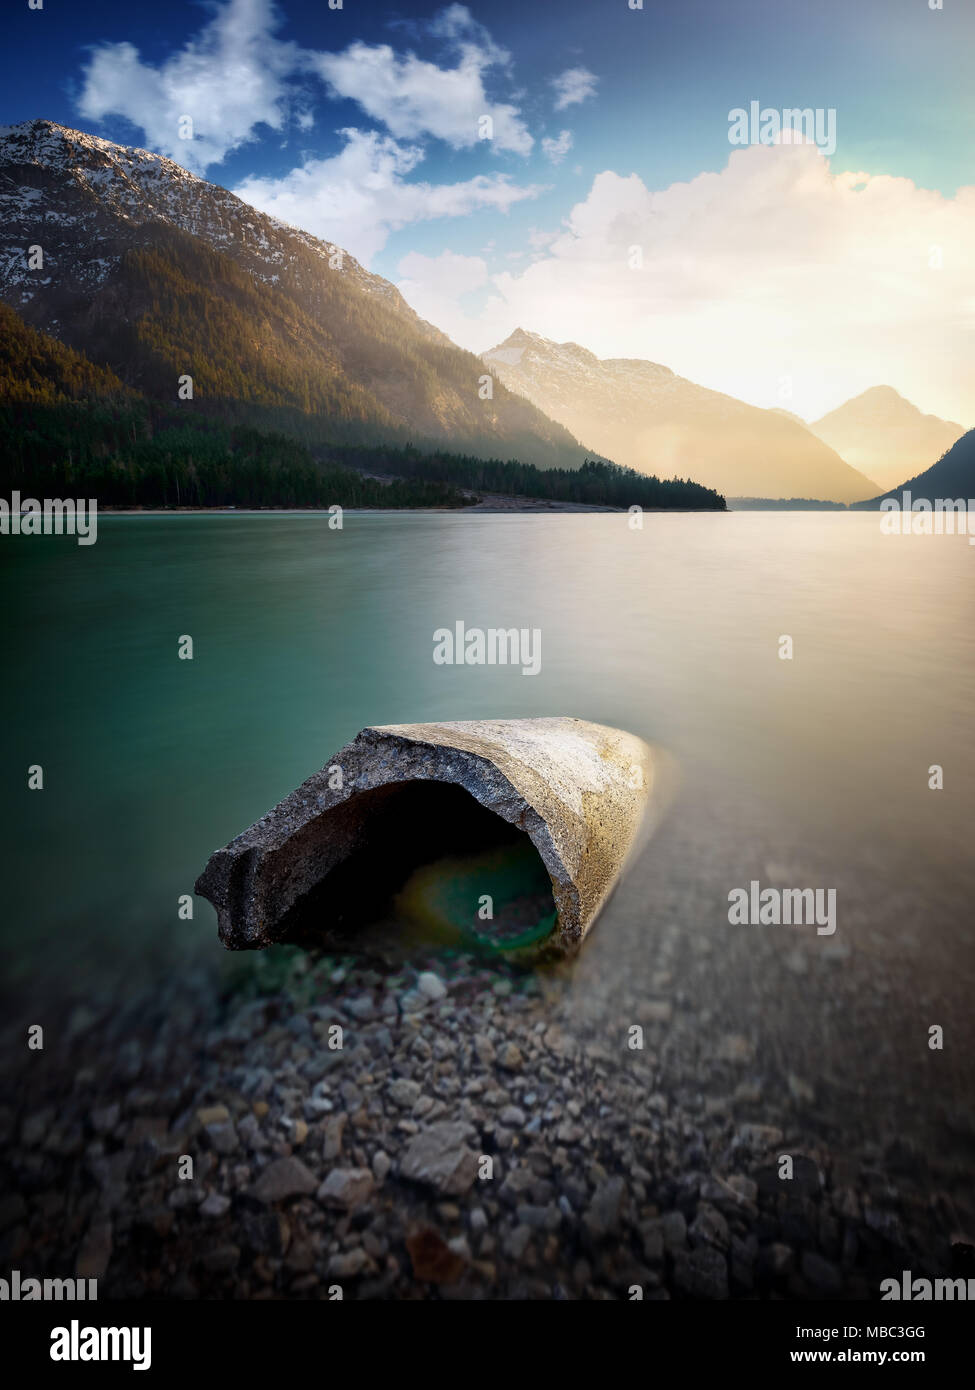 Landscape of Plansee lake and Alps mountains. Concrete block lying in lake, Tyrol, Austria - Stock Image